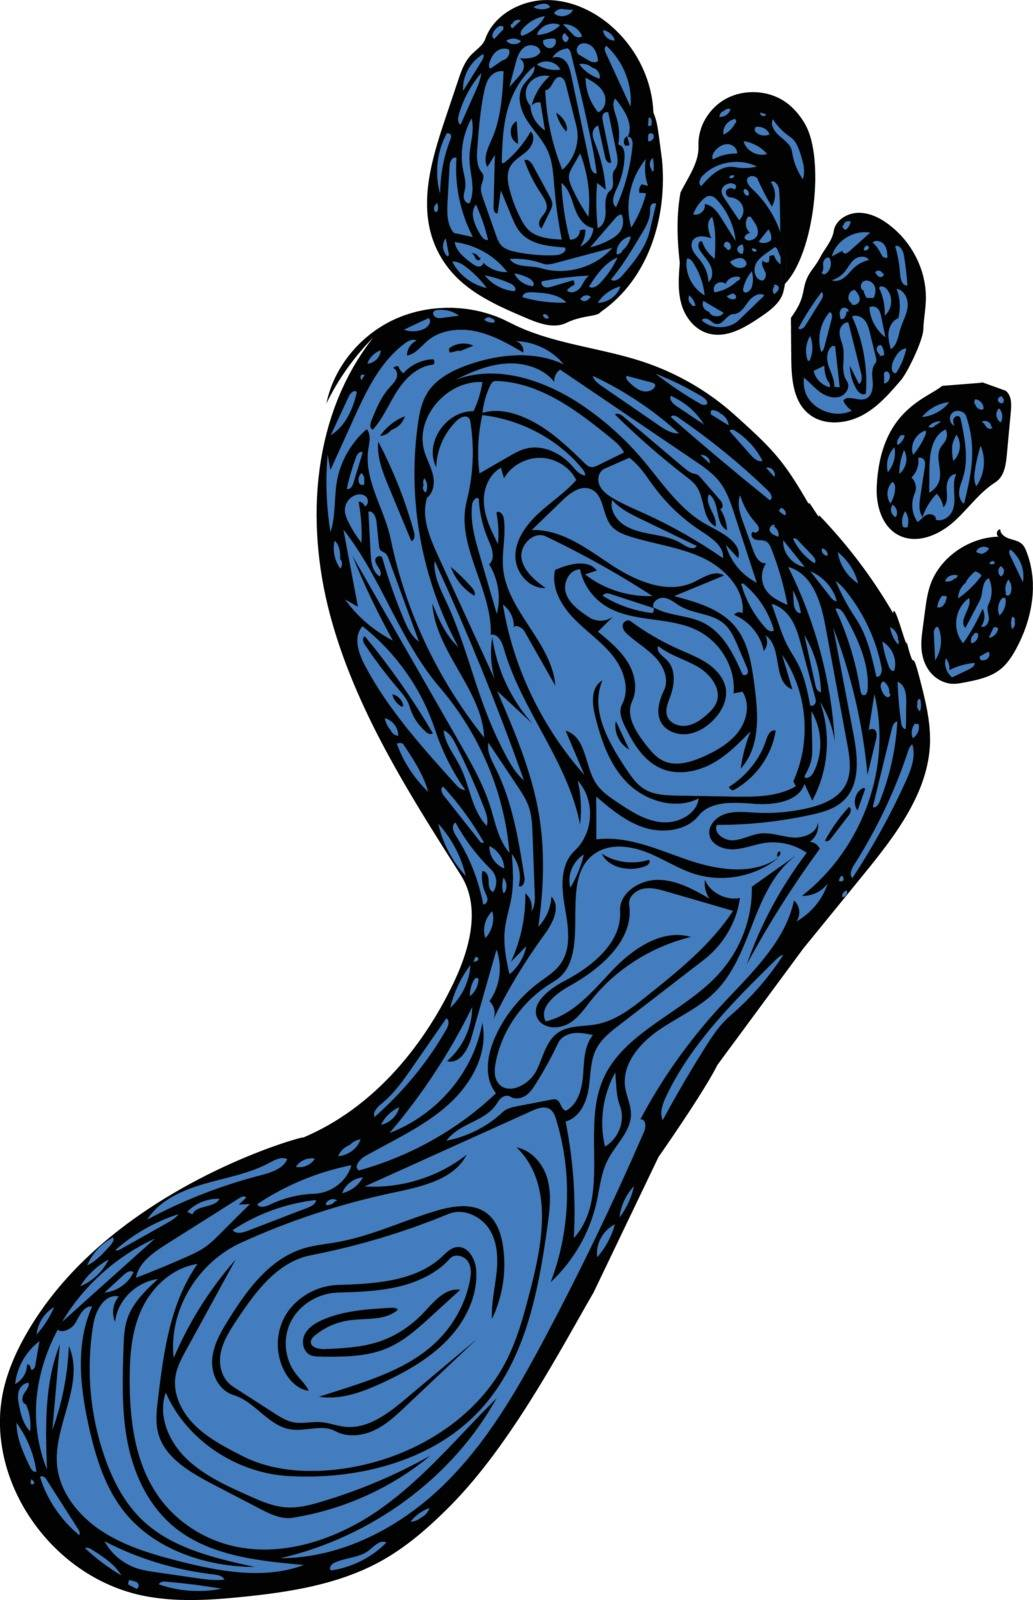 Drawing sketch style illustration of a footprint set on isolated white background.